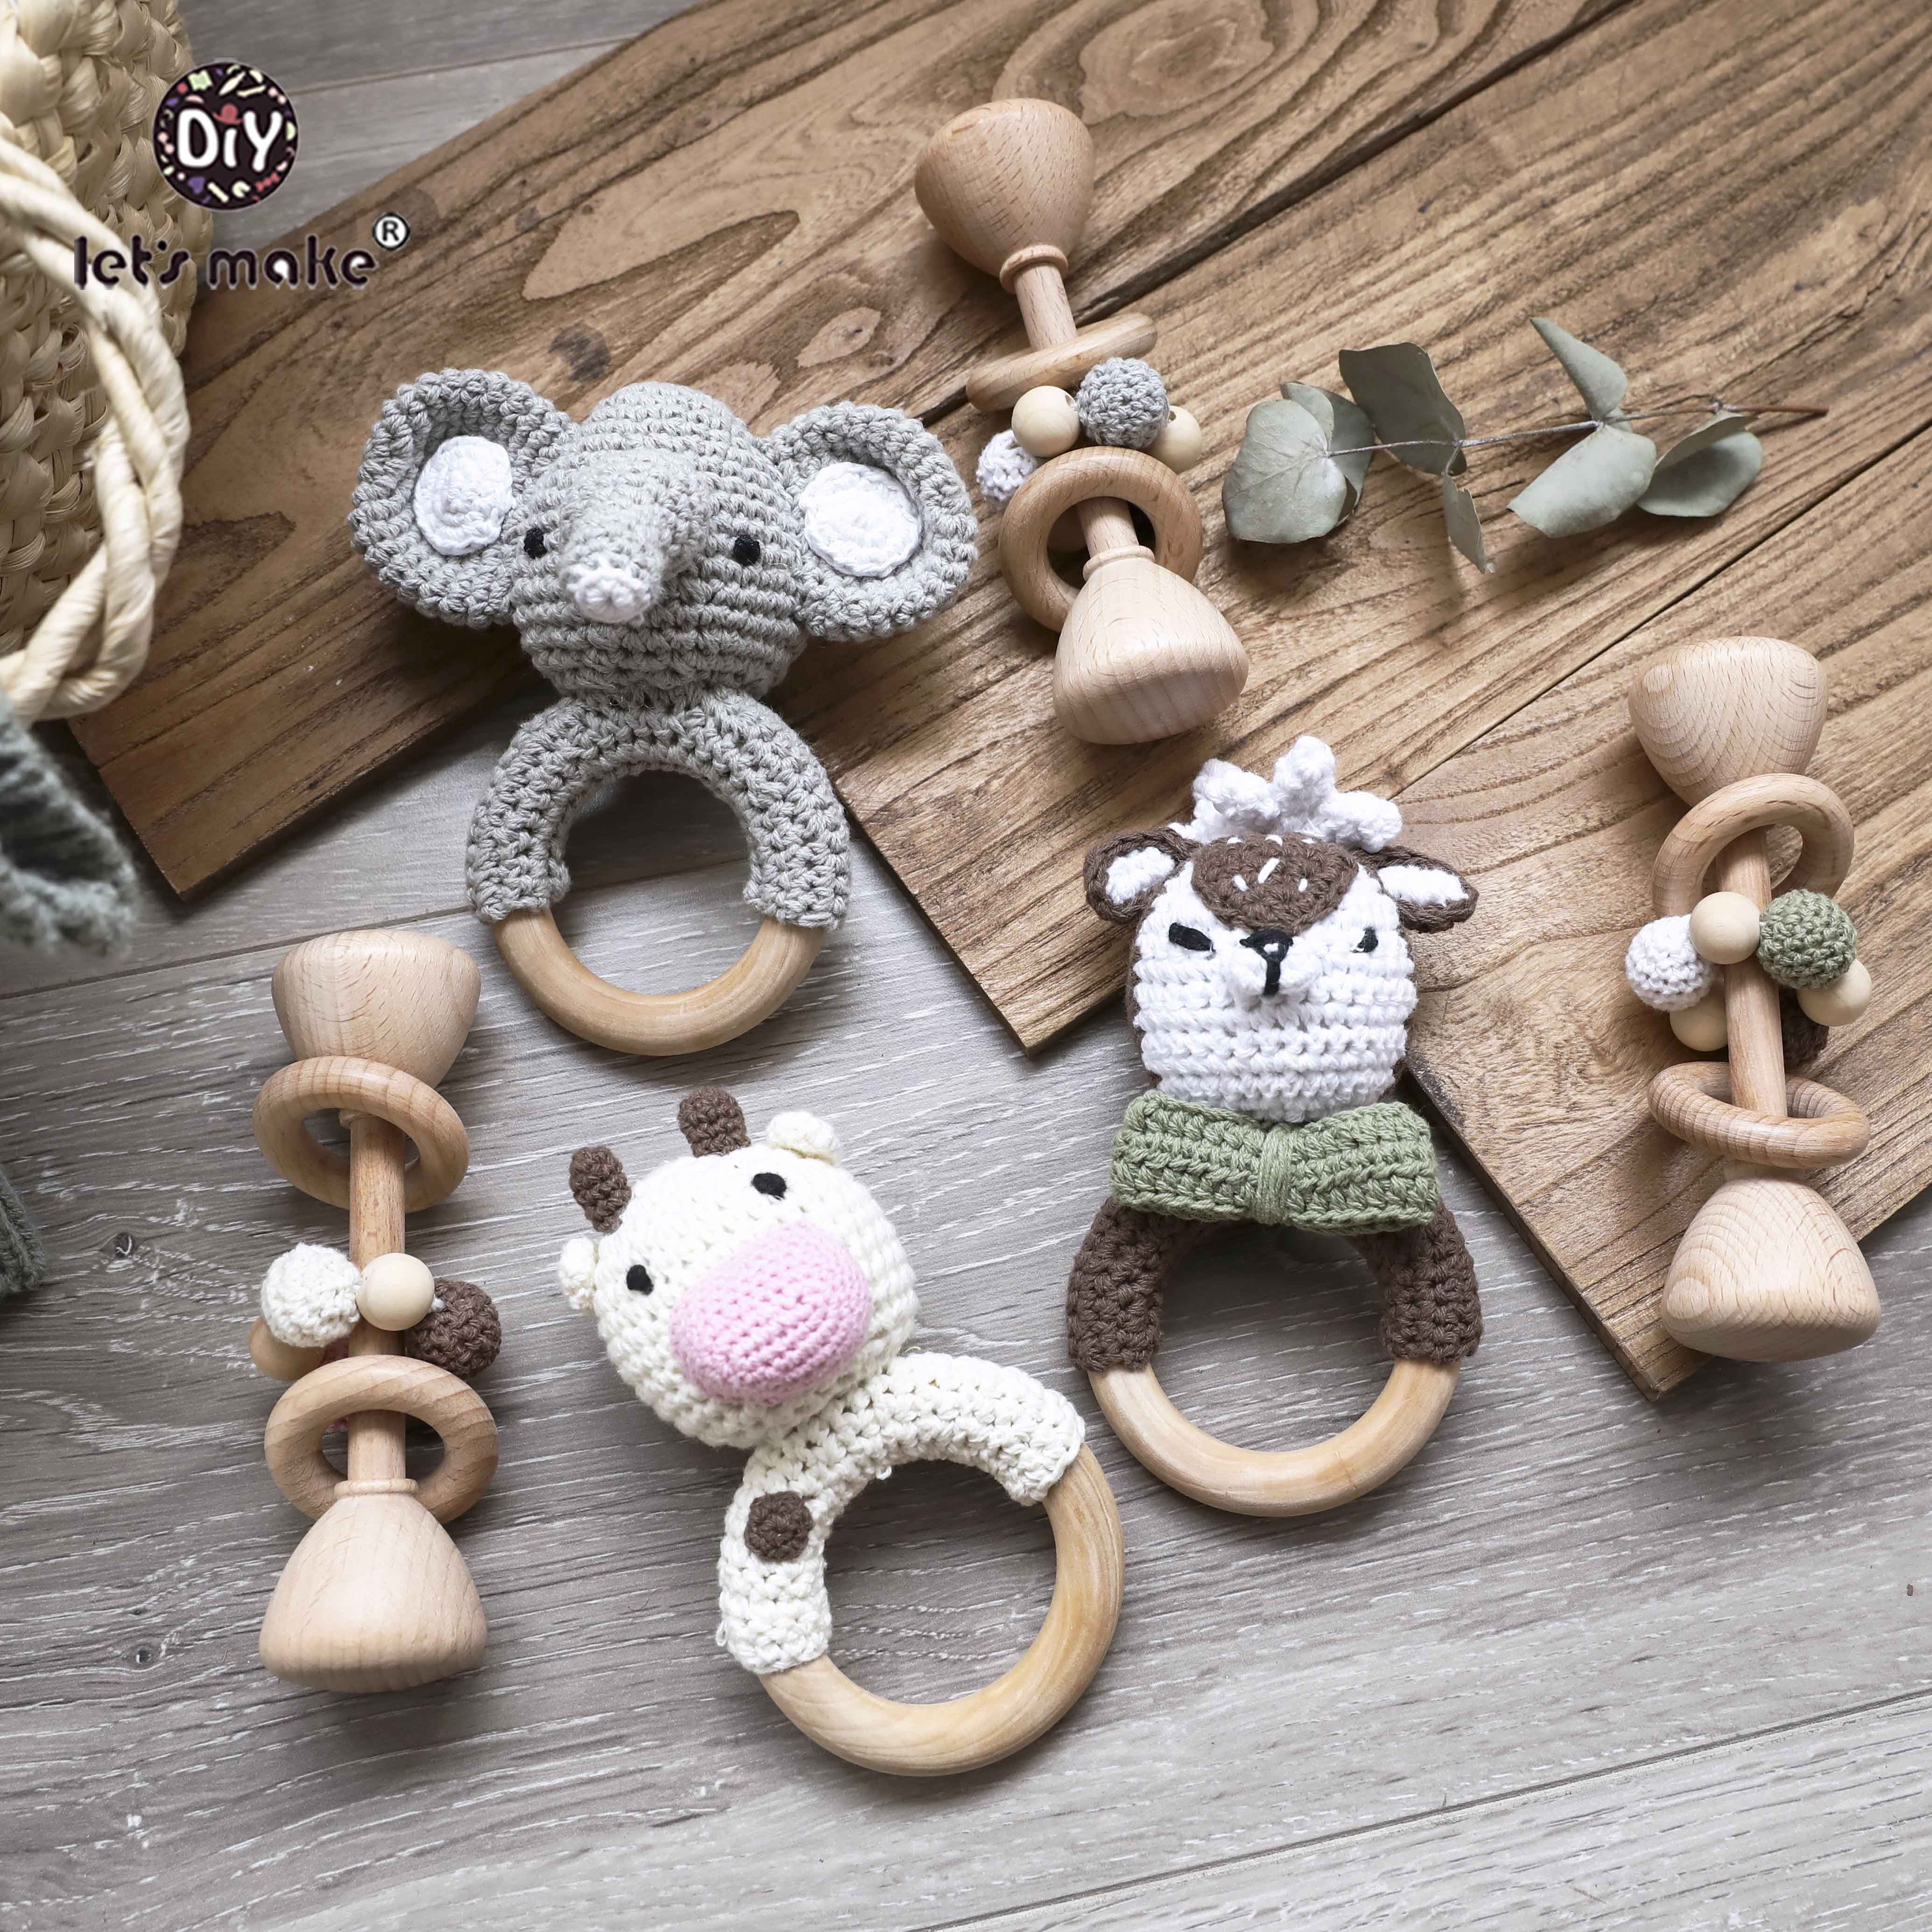 Let's Make 2pcs Wooden Baby Toys Set Wooden Beads Woven Wood Ring Kit Gym Wood Animal Rattles Wooden Teether BPA Free Kids Toys